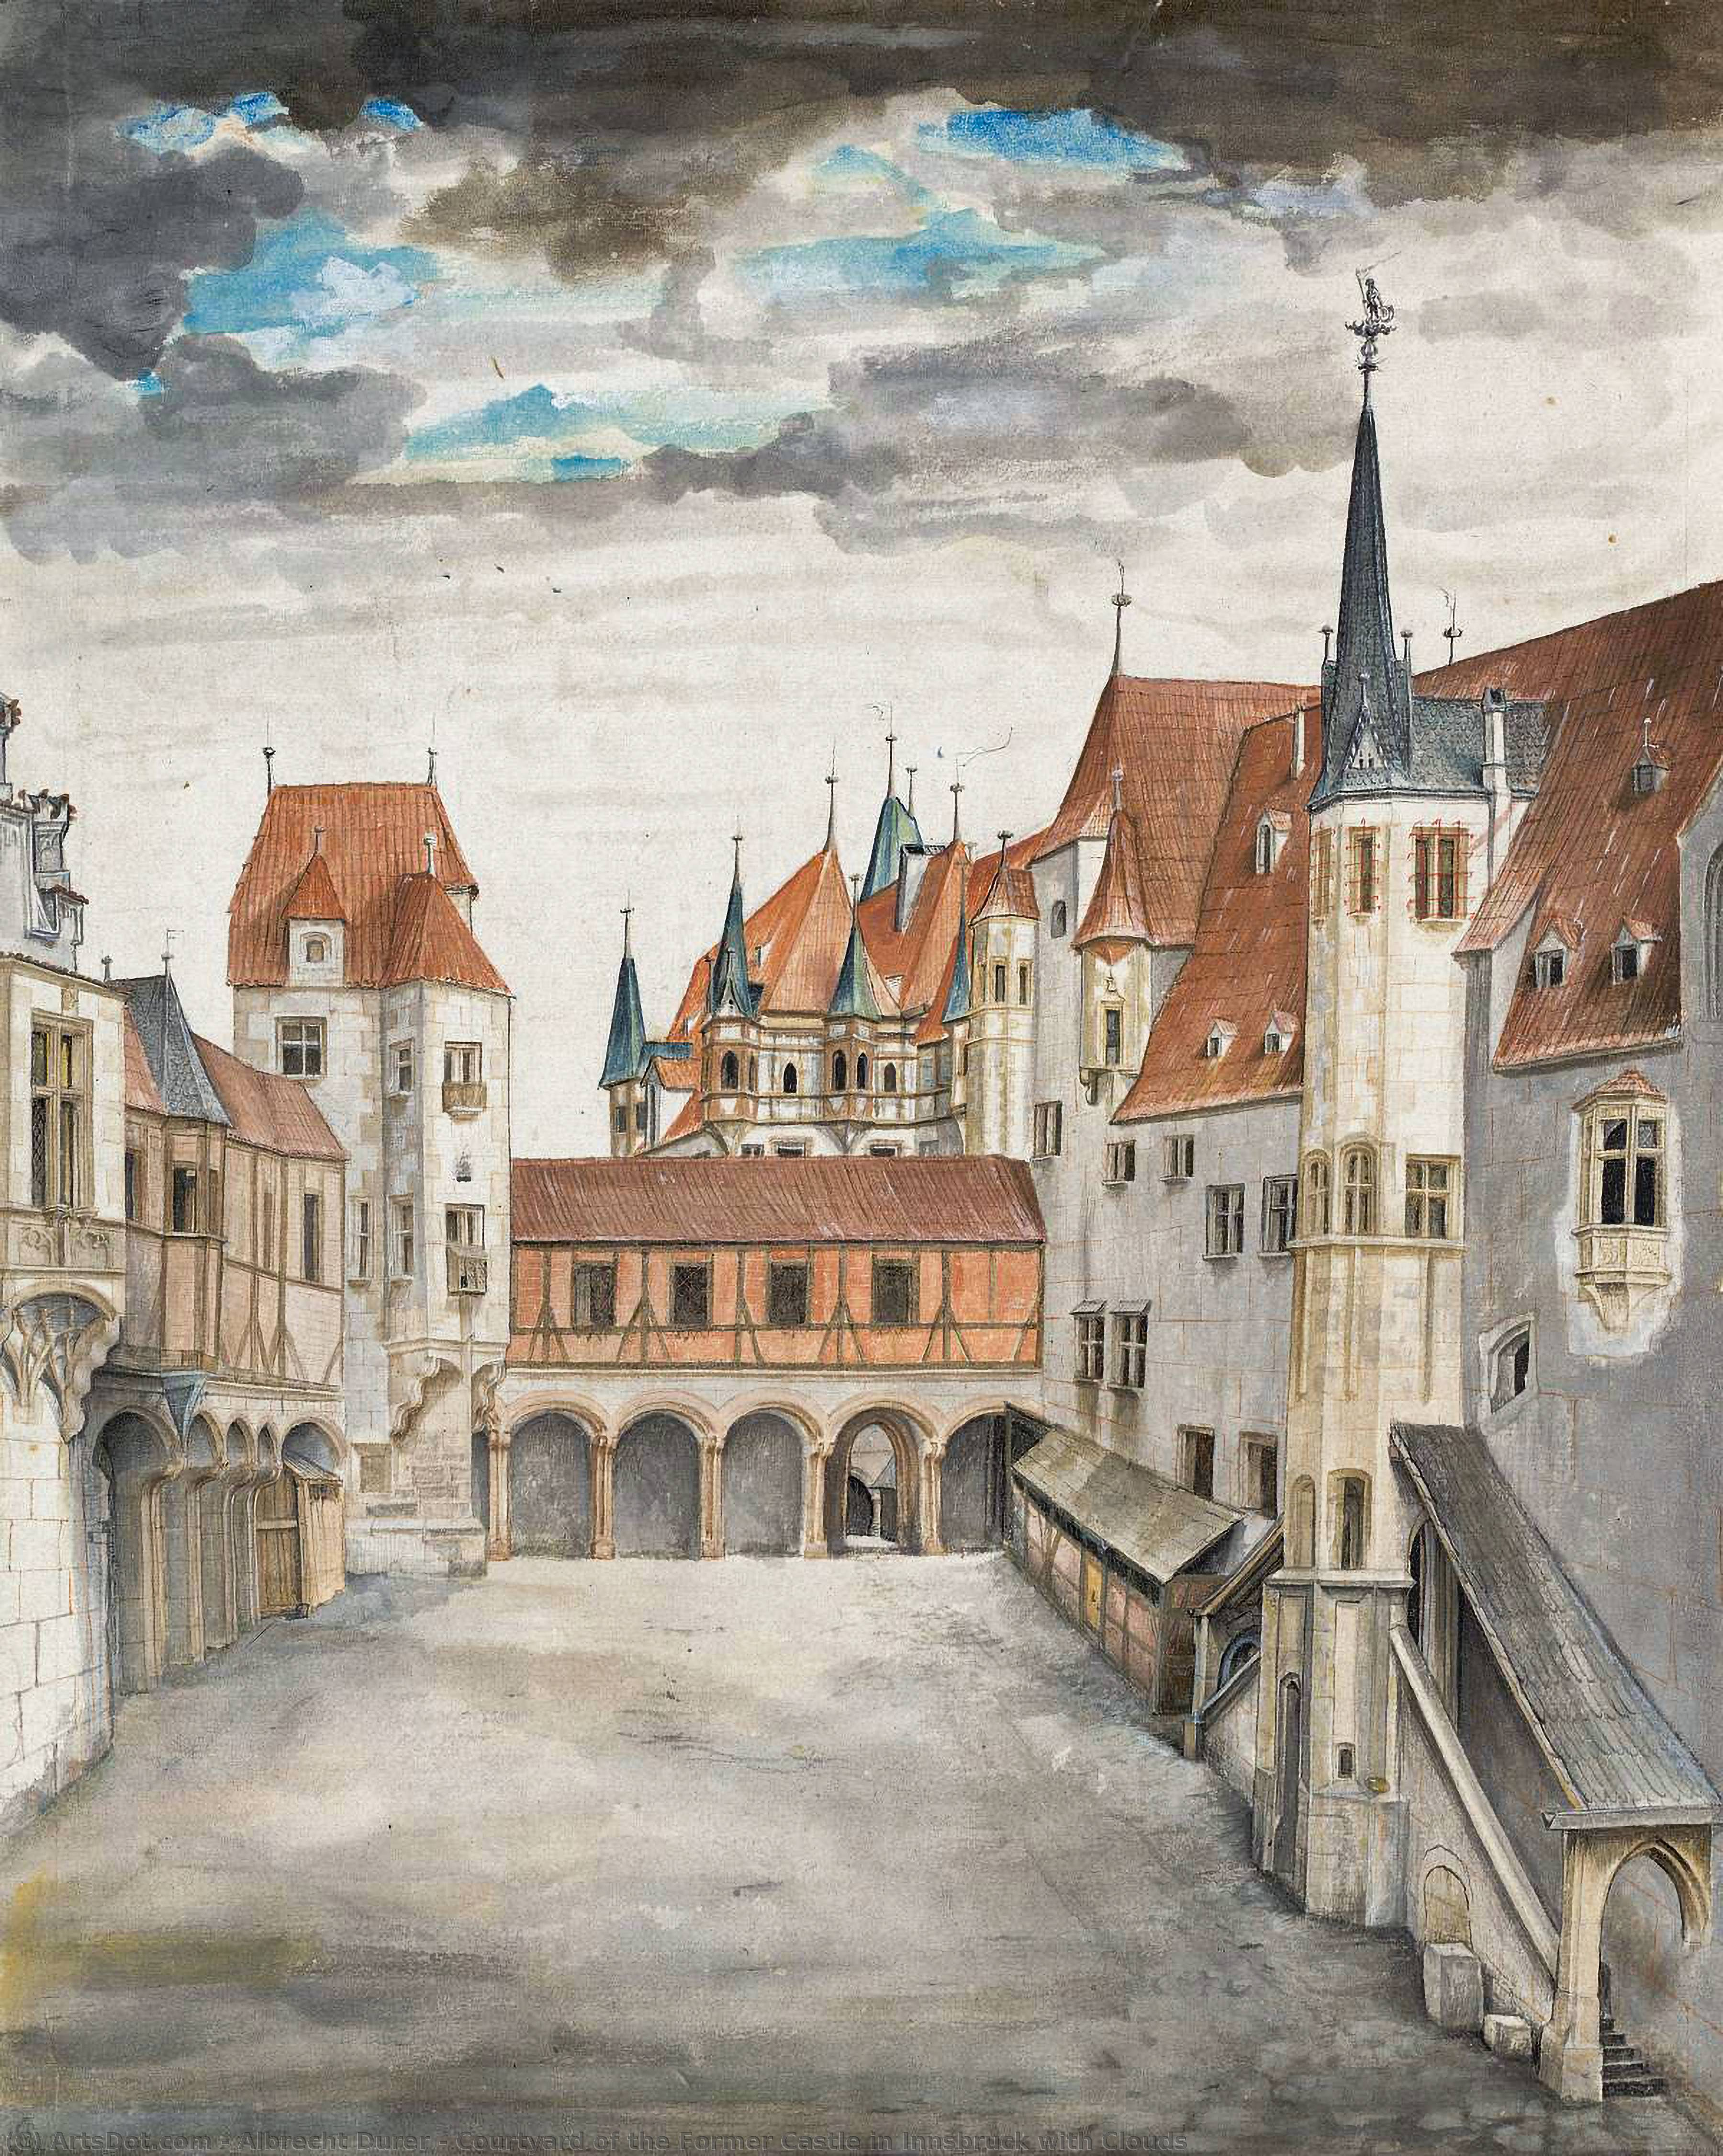 Wikioo.org - The Encyclopedia of Fine Arts - Painting, Artwork by Albrecht Durer - Courtyard of the Former Castle in Innsbruck with Clouds